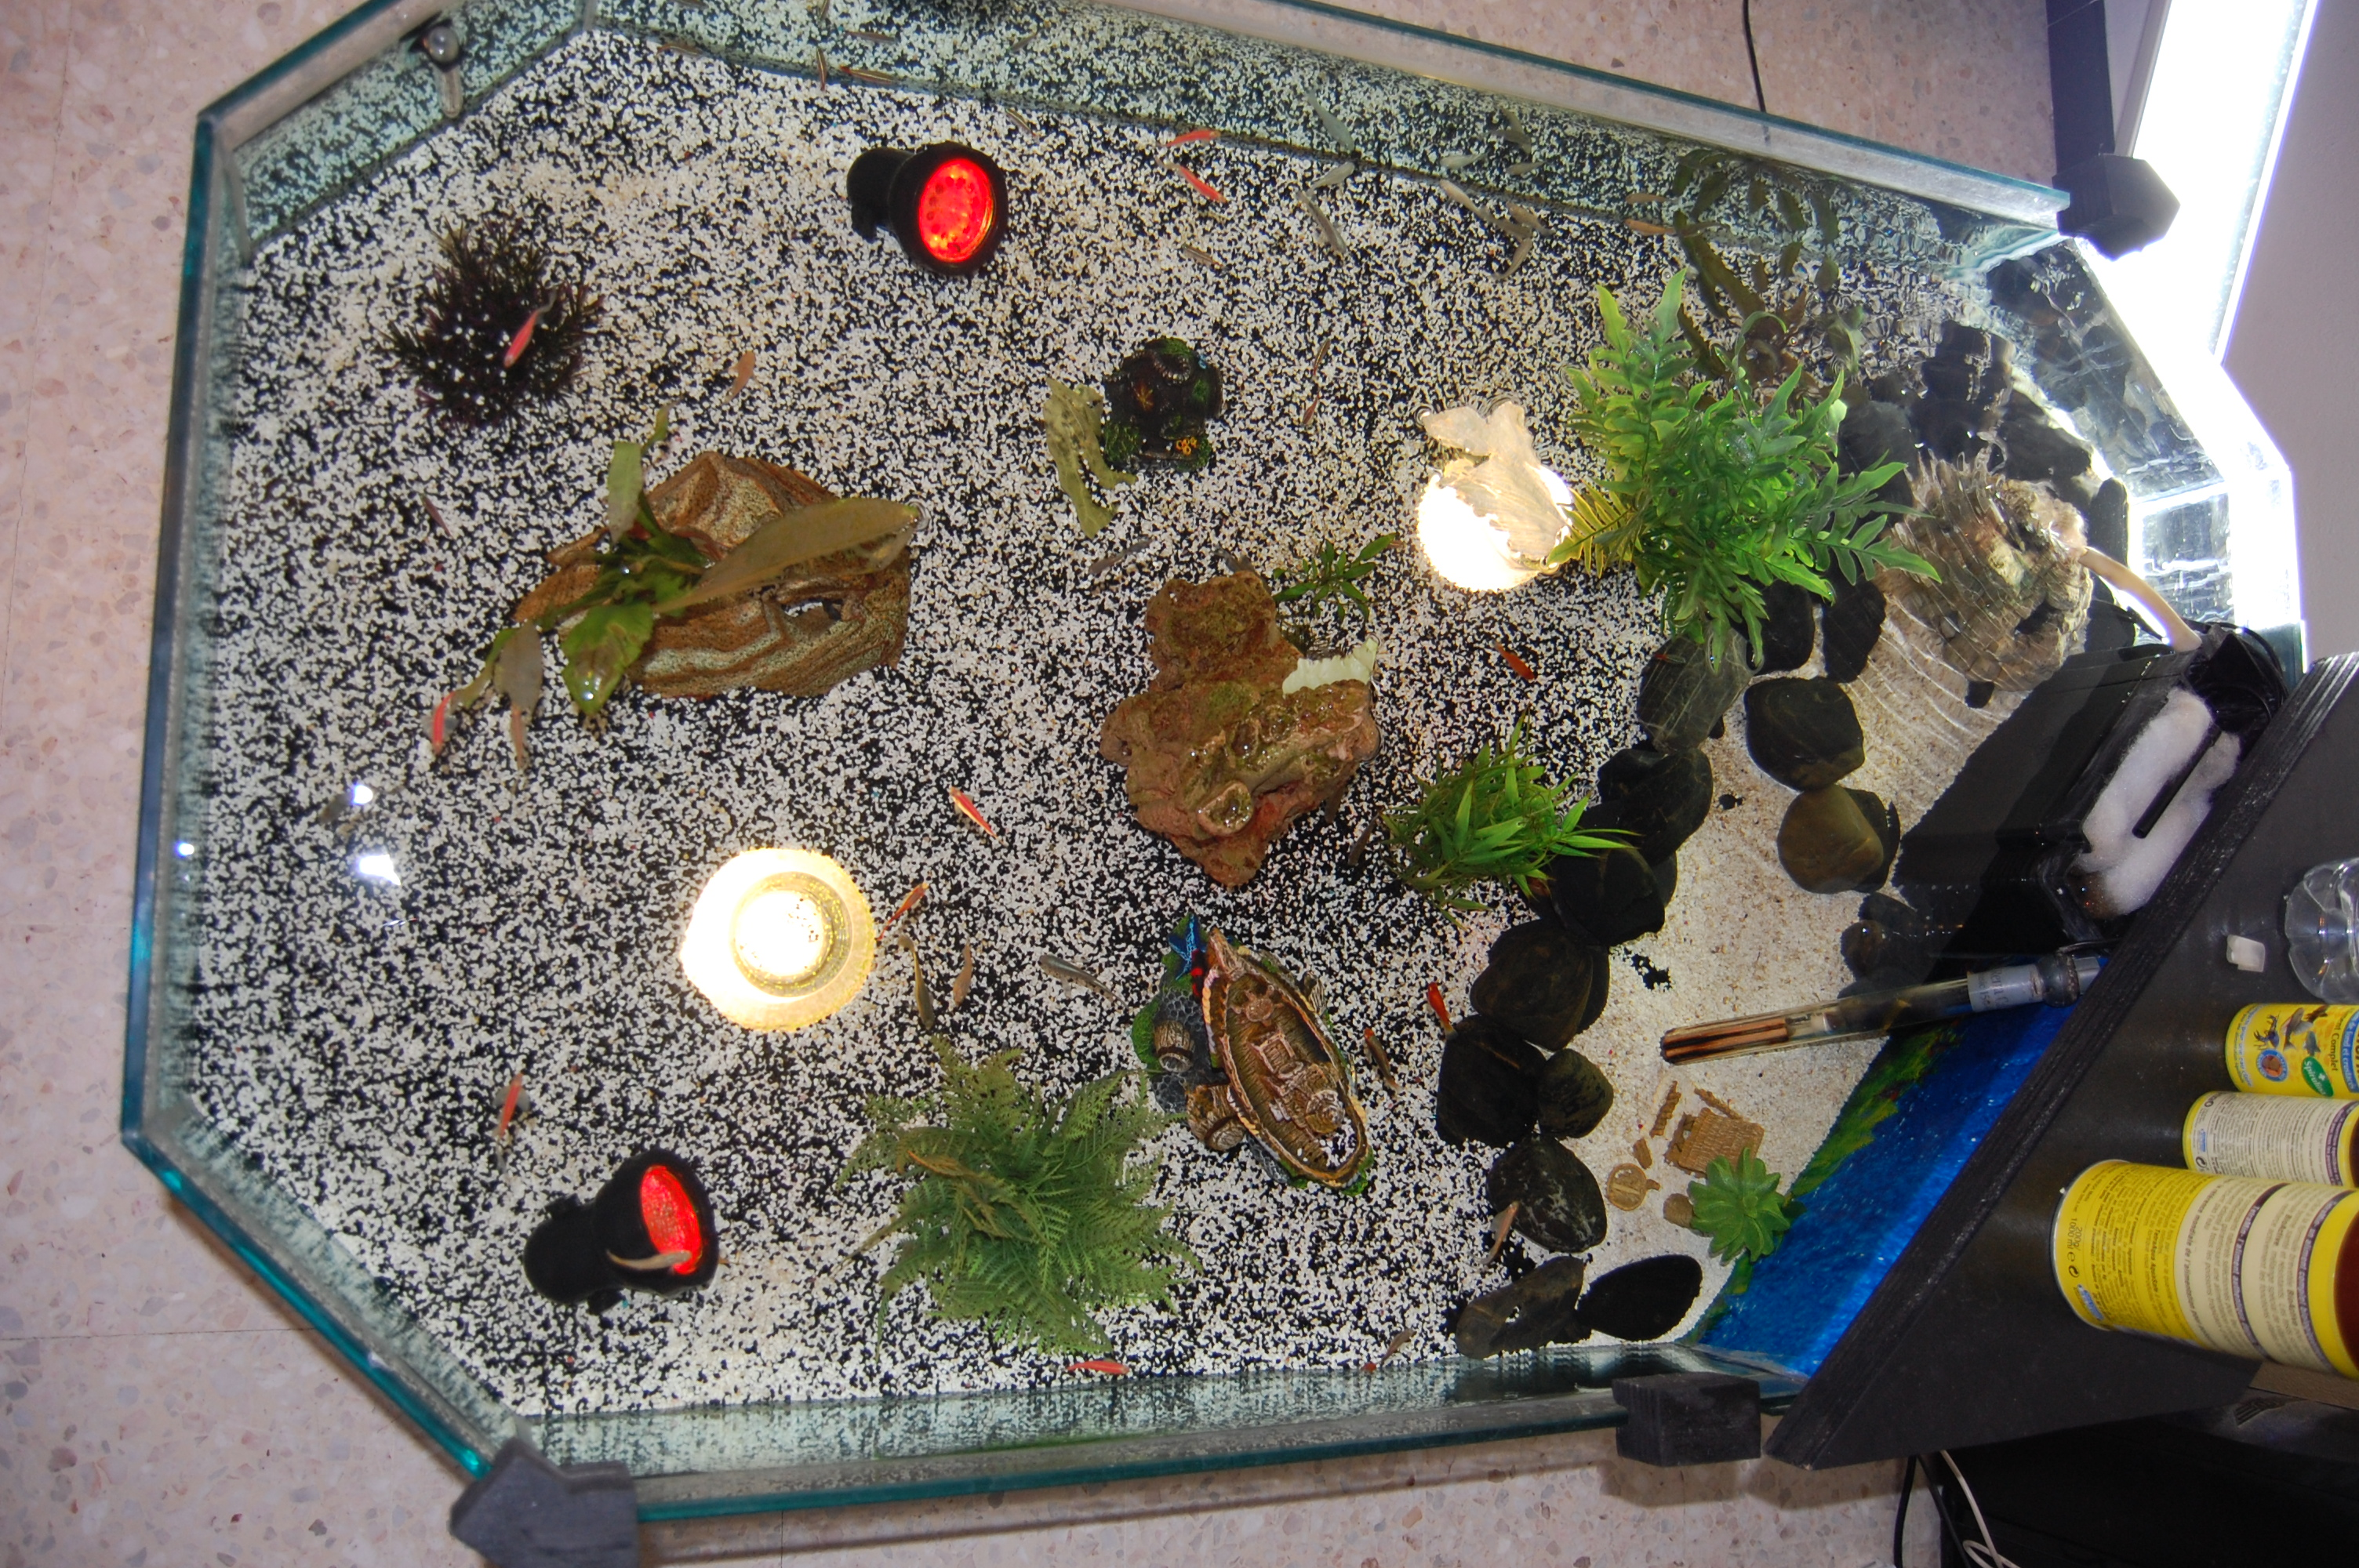 Dsc 0040 table basse aquarium fait maison lol lynka83 - Table basse fait maison ...